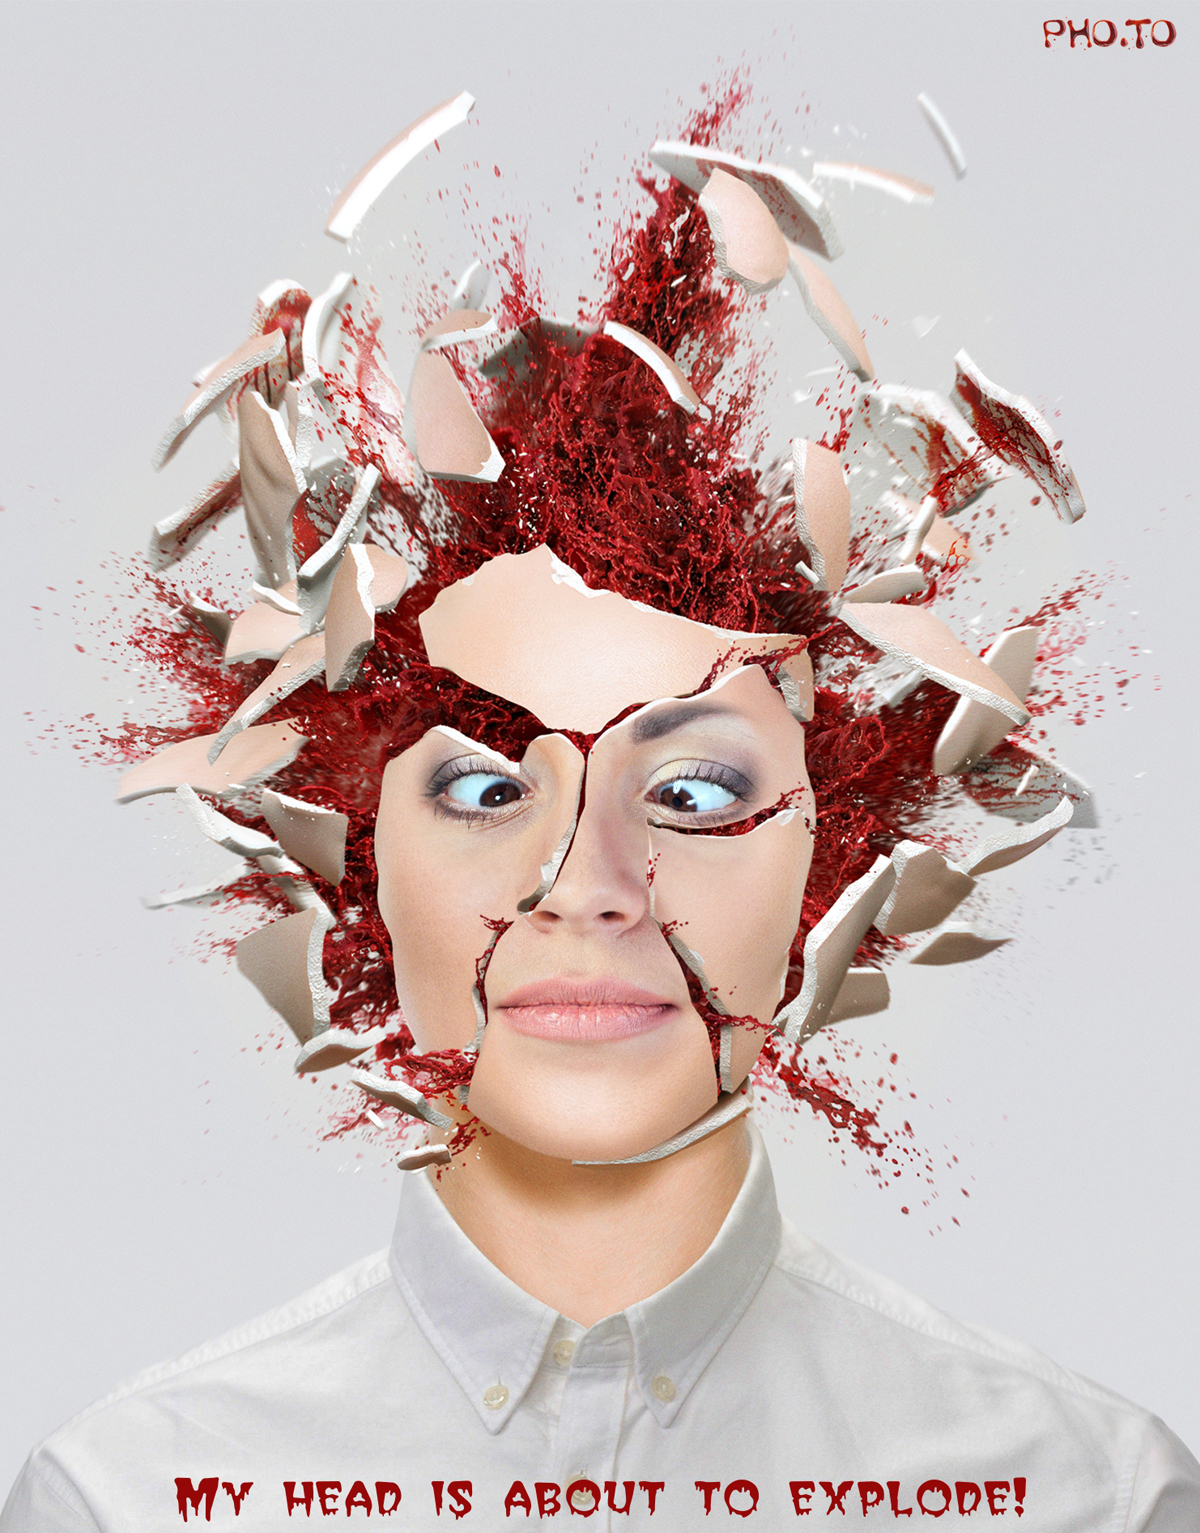 A creative way to say 'My head is about to explode!'